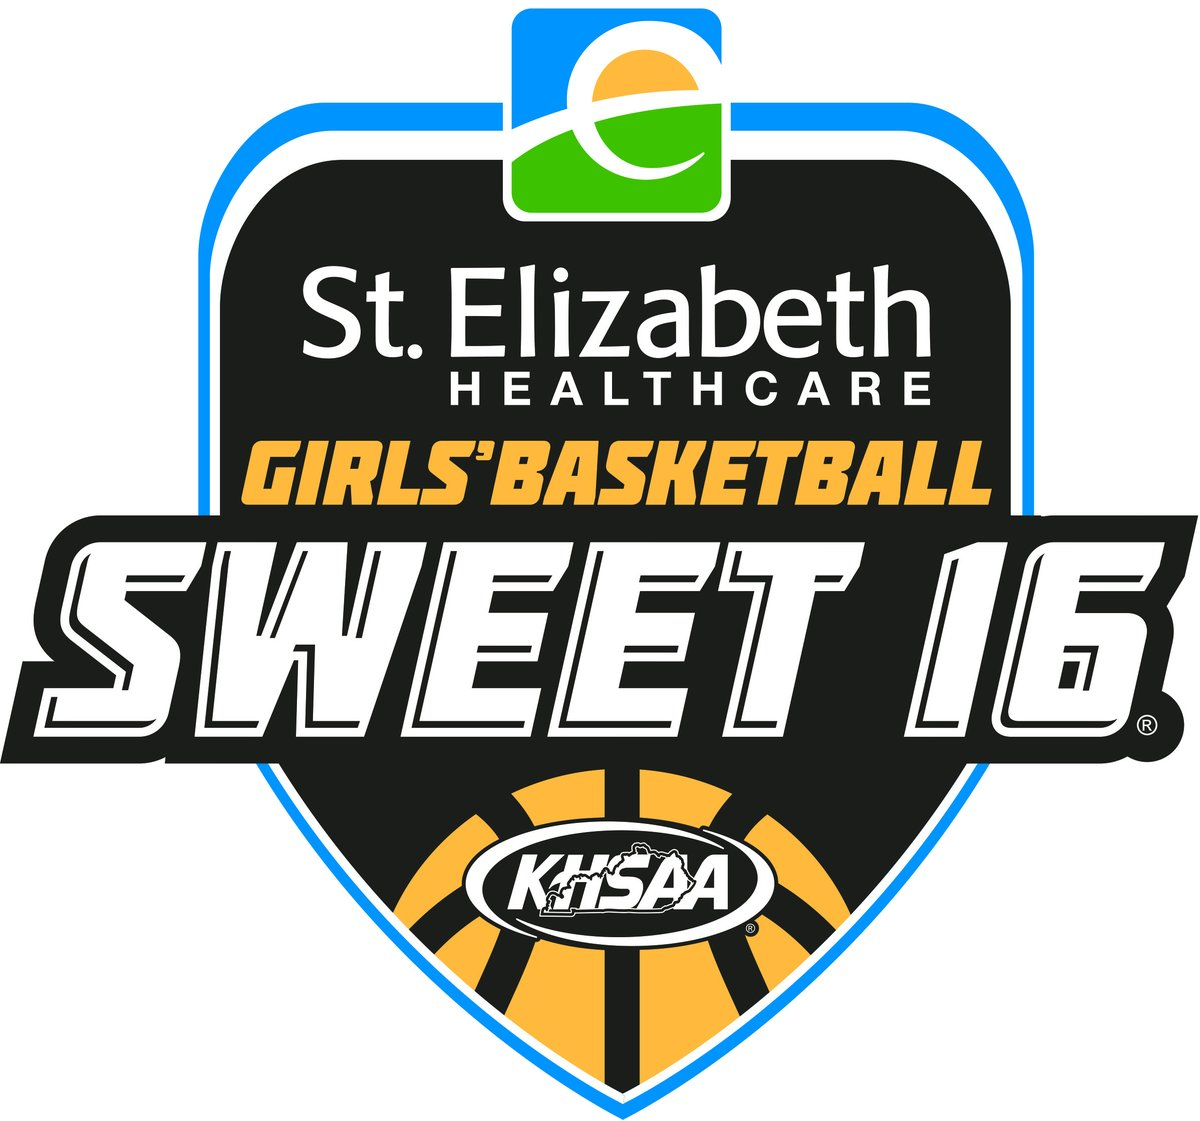 Girls Sweet 16 pairings announced